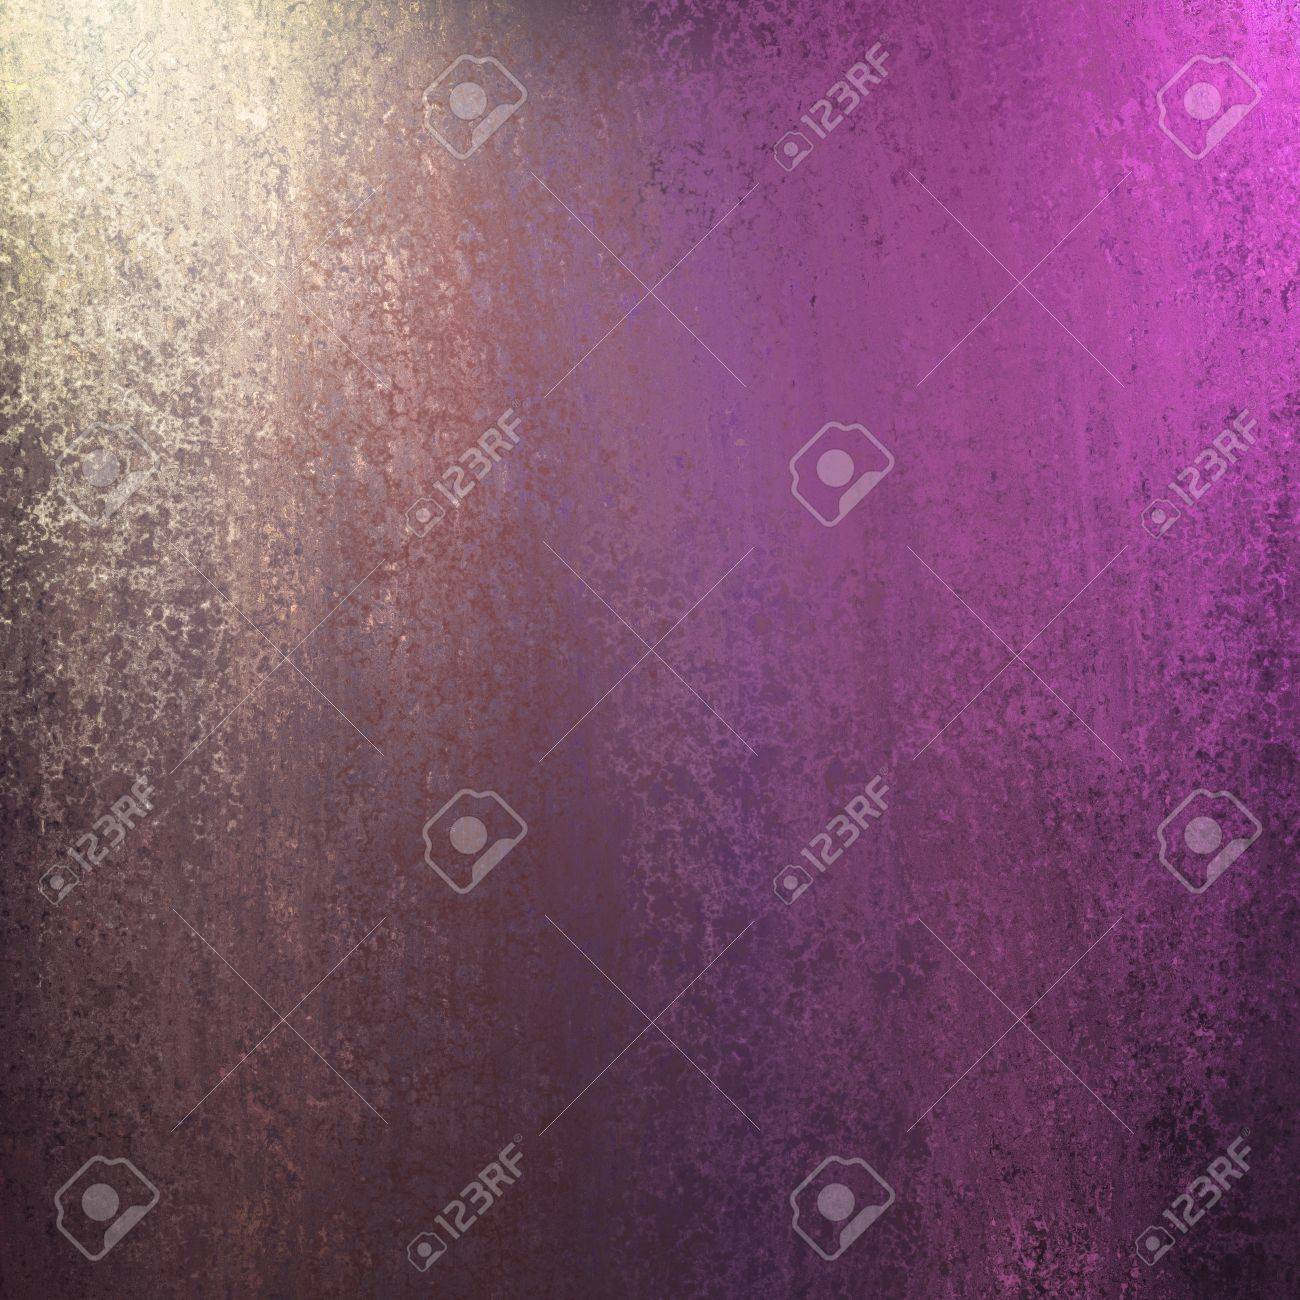 pink and purple background with corner lighting and soft faded vintage grunge sponge texture design layout with copyspace Stock Photo - 12624104